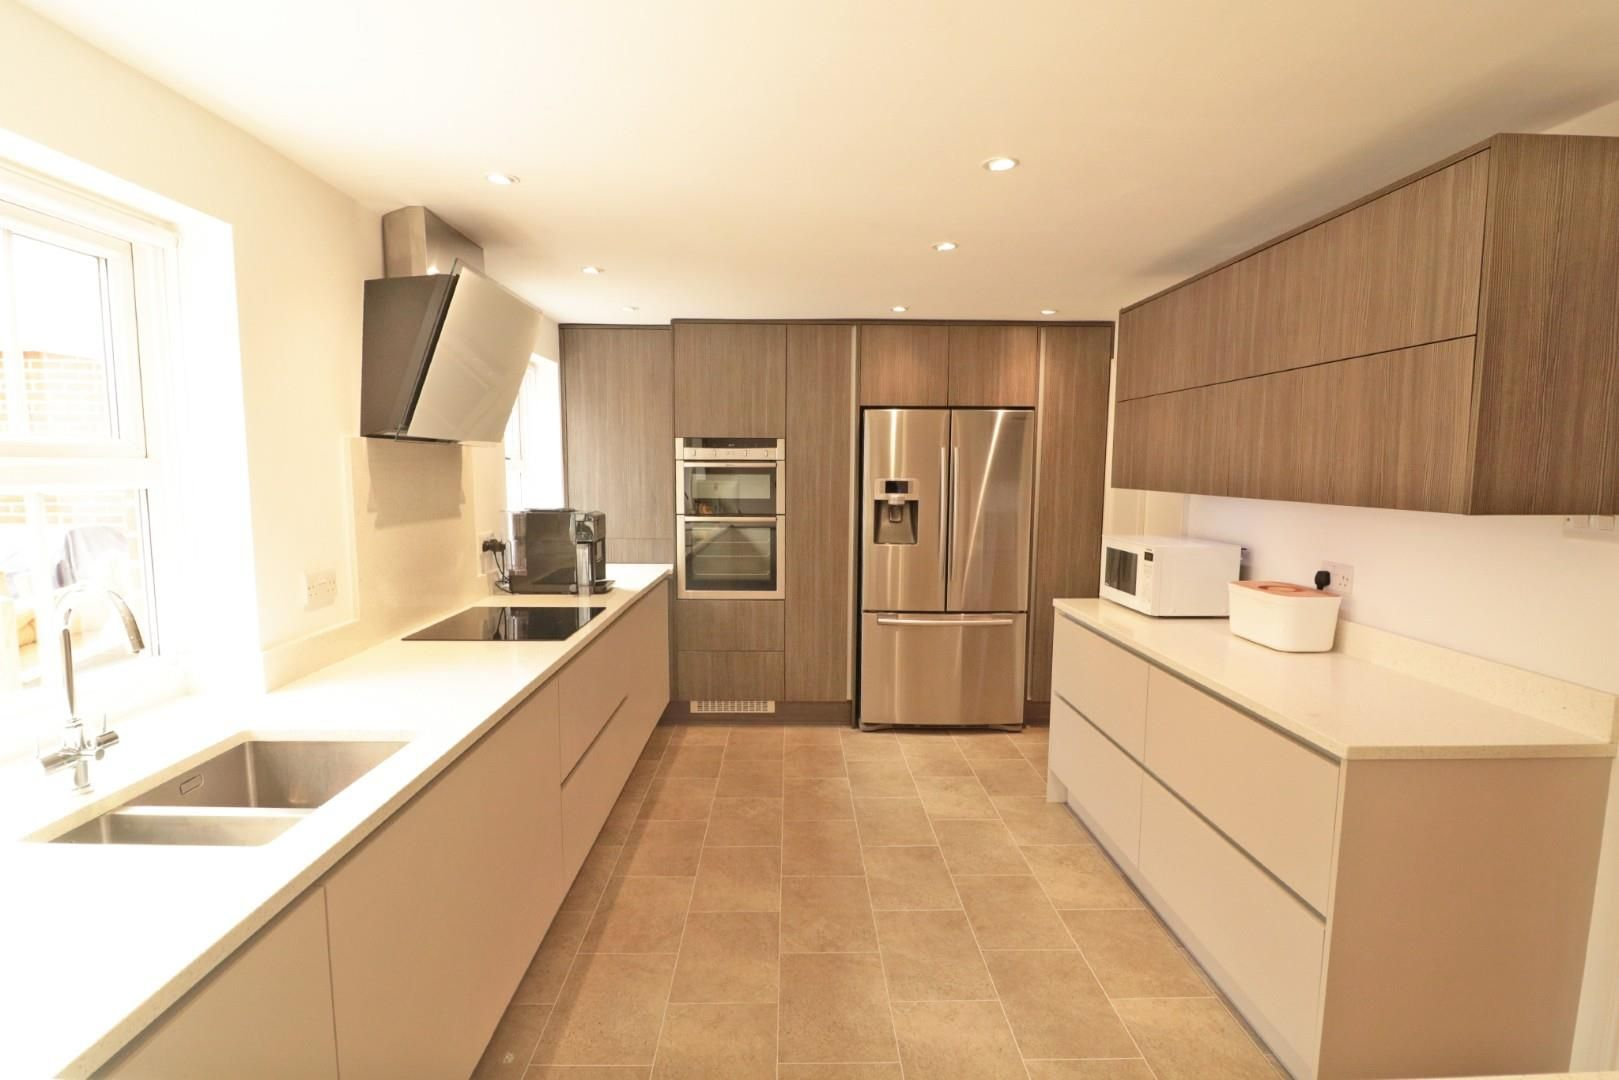 4 bed detached for sale in Binfield  - Property Image 7